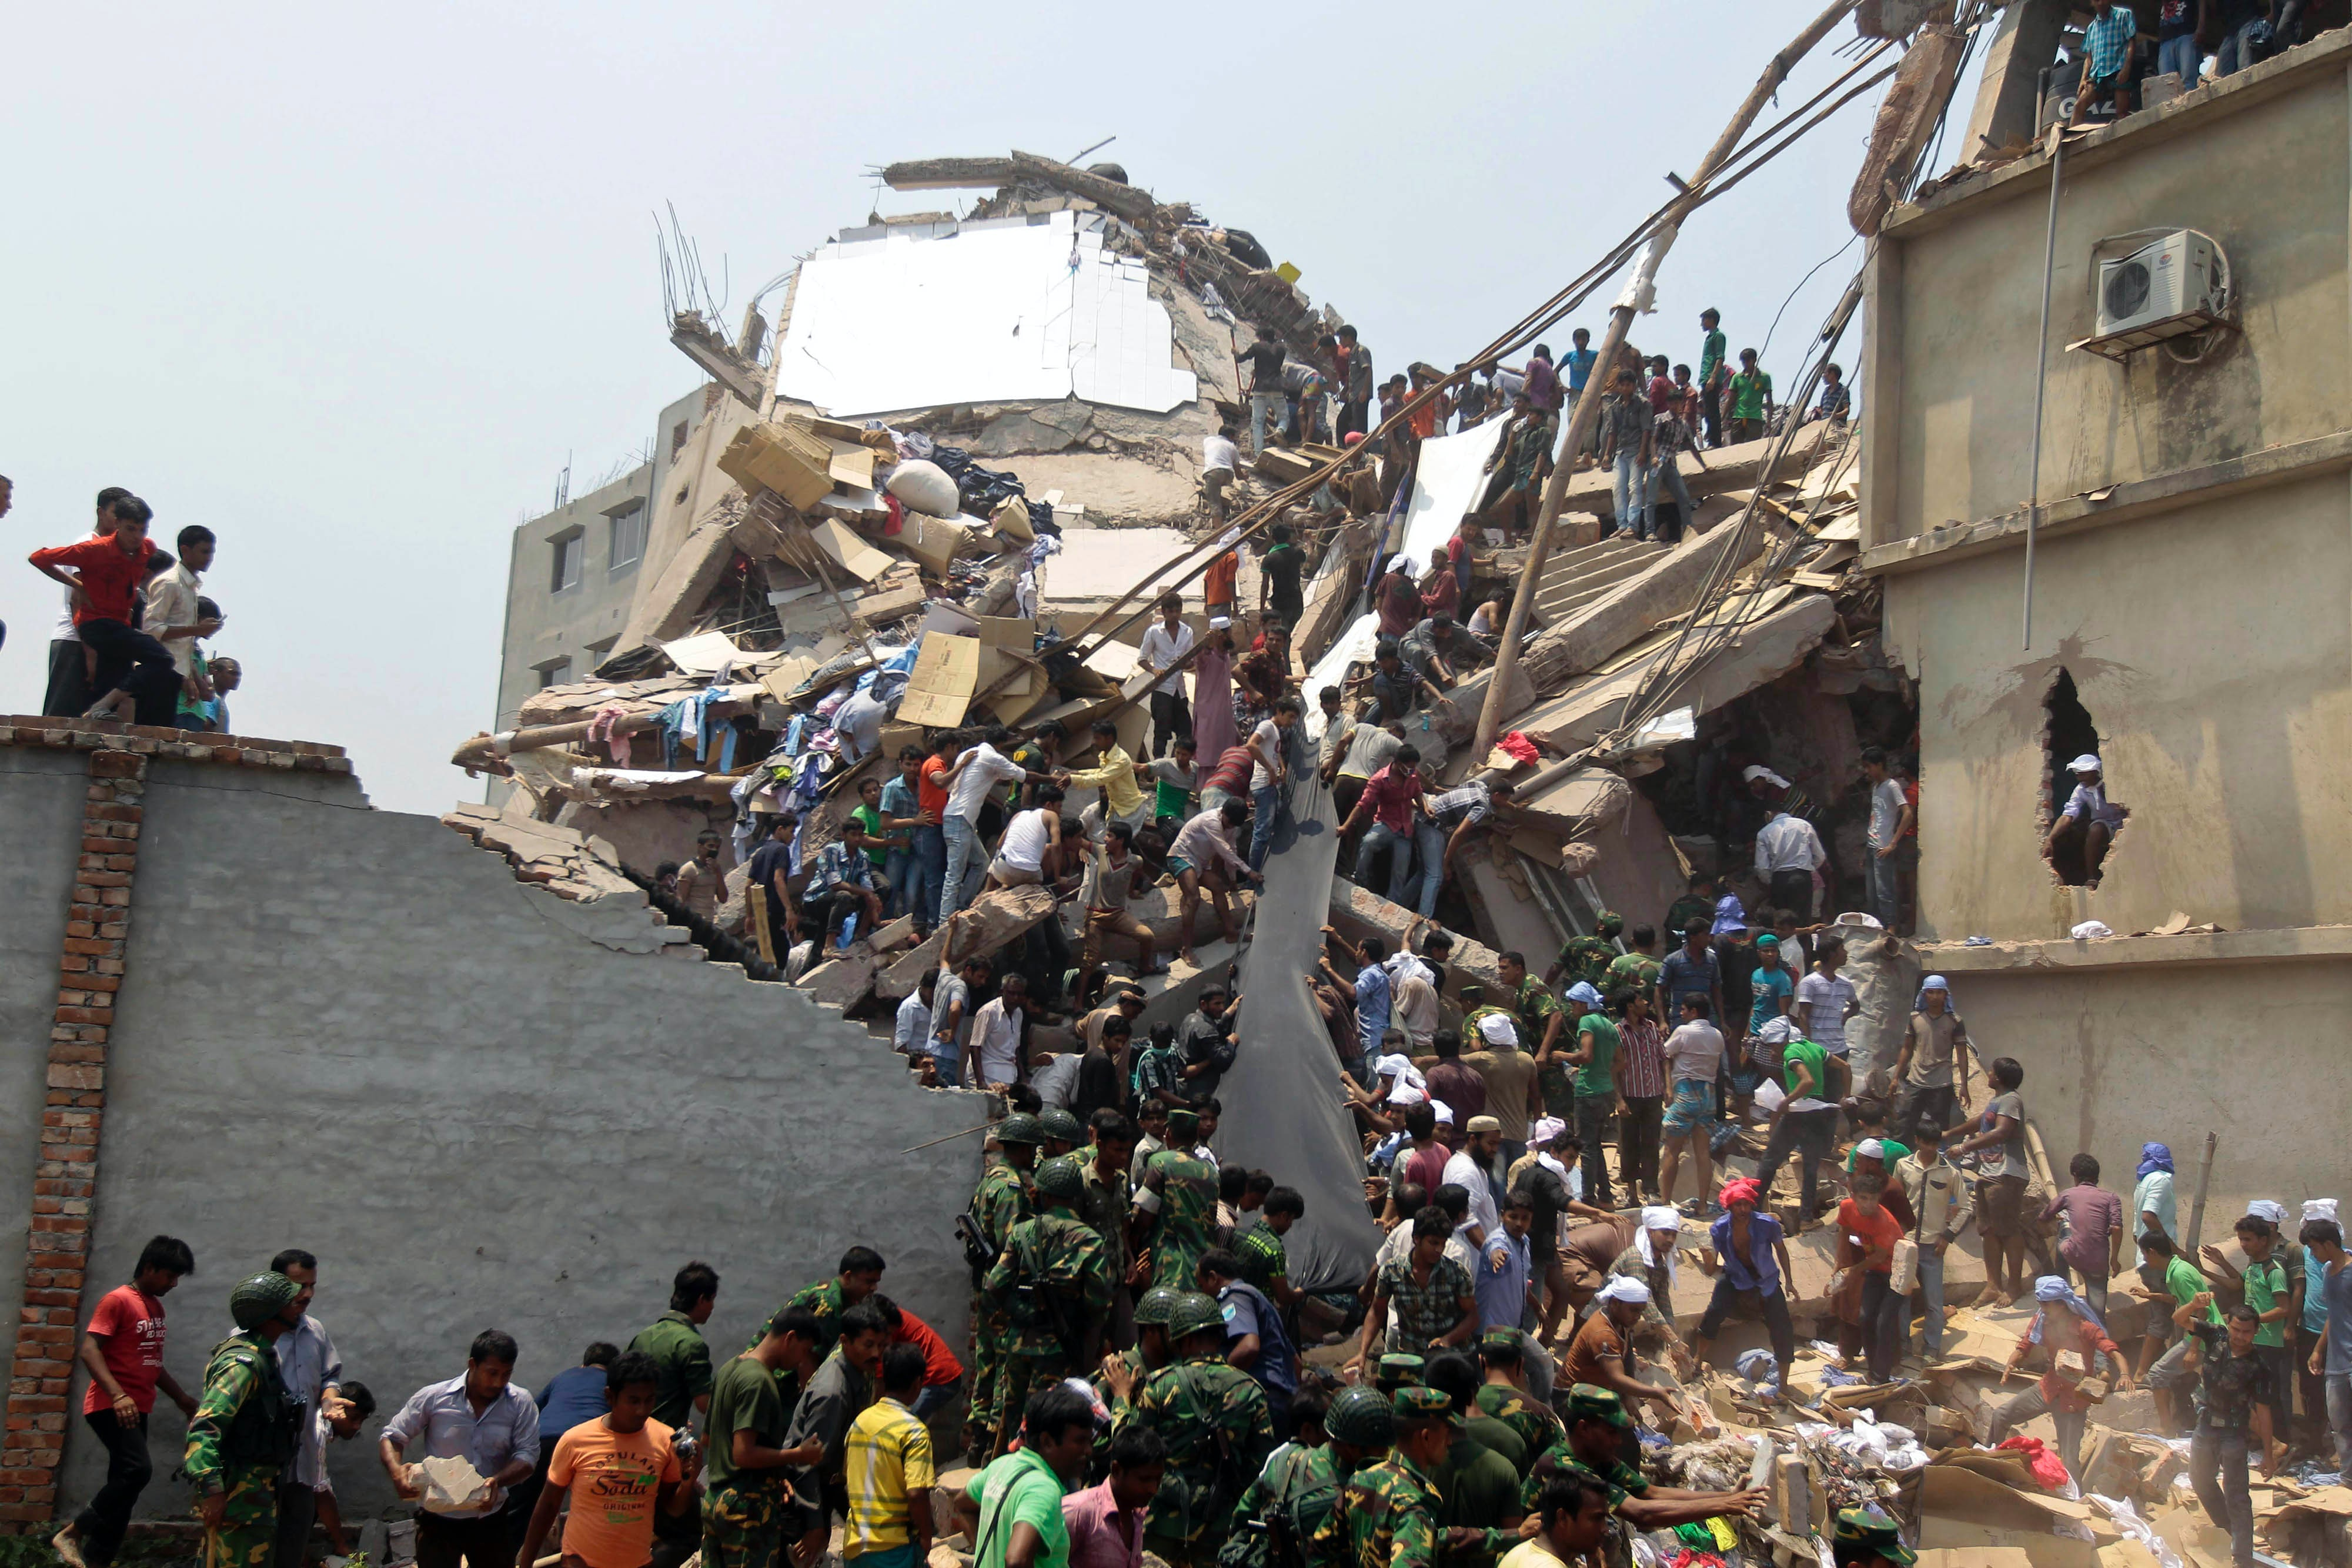 Collapsed building in Dhaka, Bangladesh | Source: Associated Press